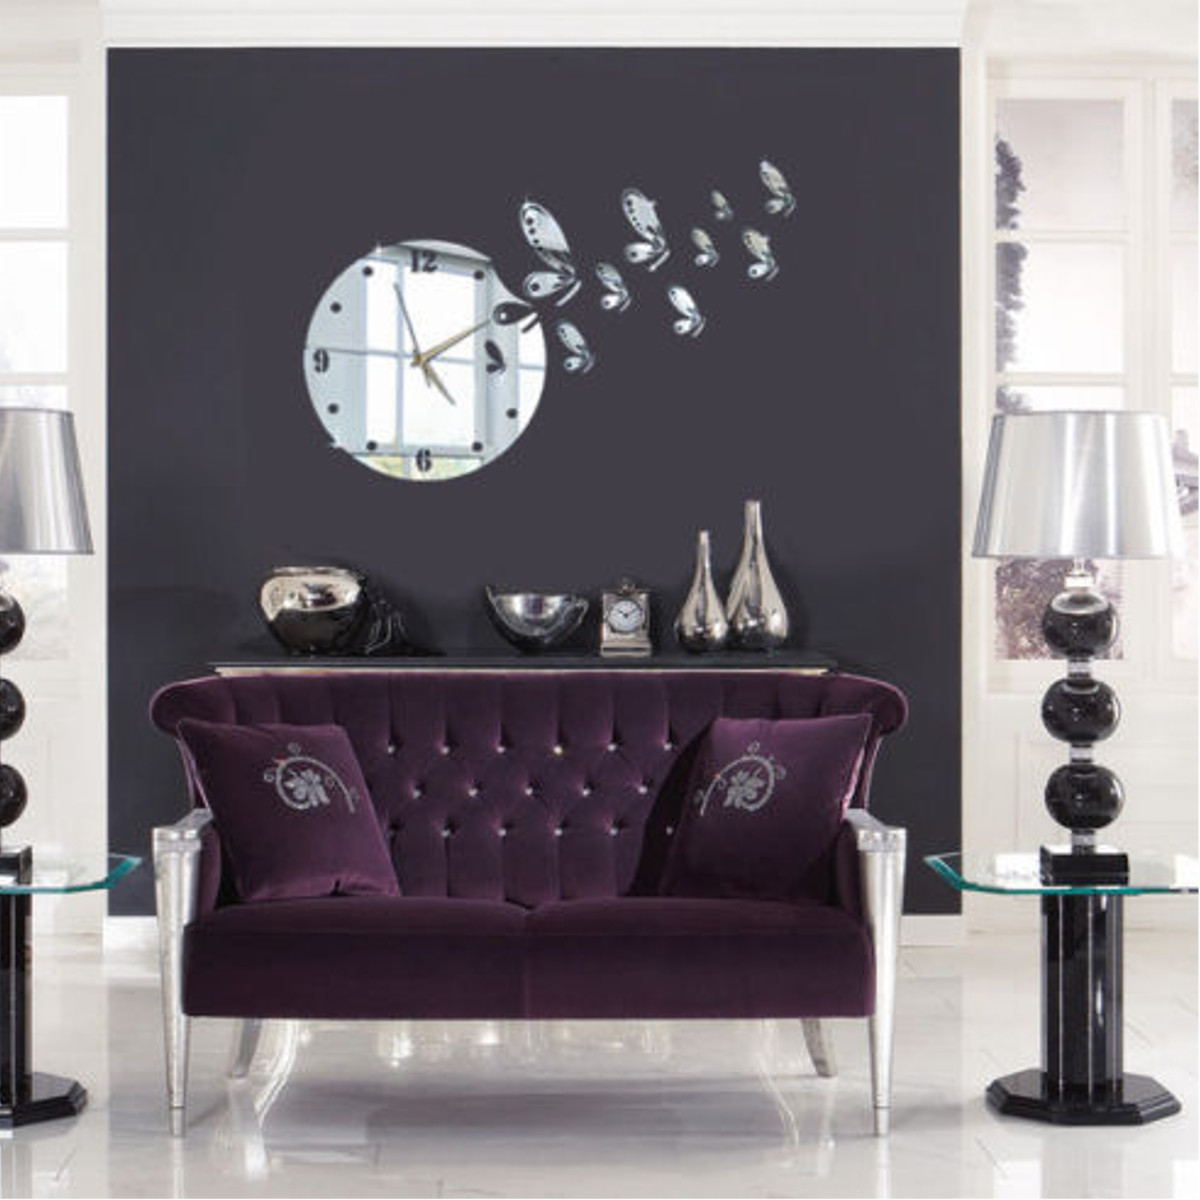 diy 3d horloge pendule murale art d coration design. Black Bedroom Furniture Sets. Home Design Ideas